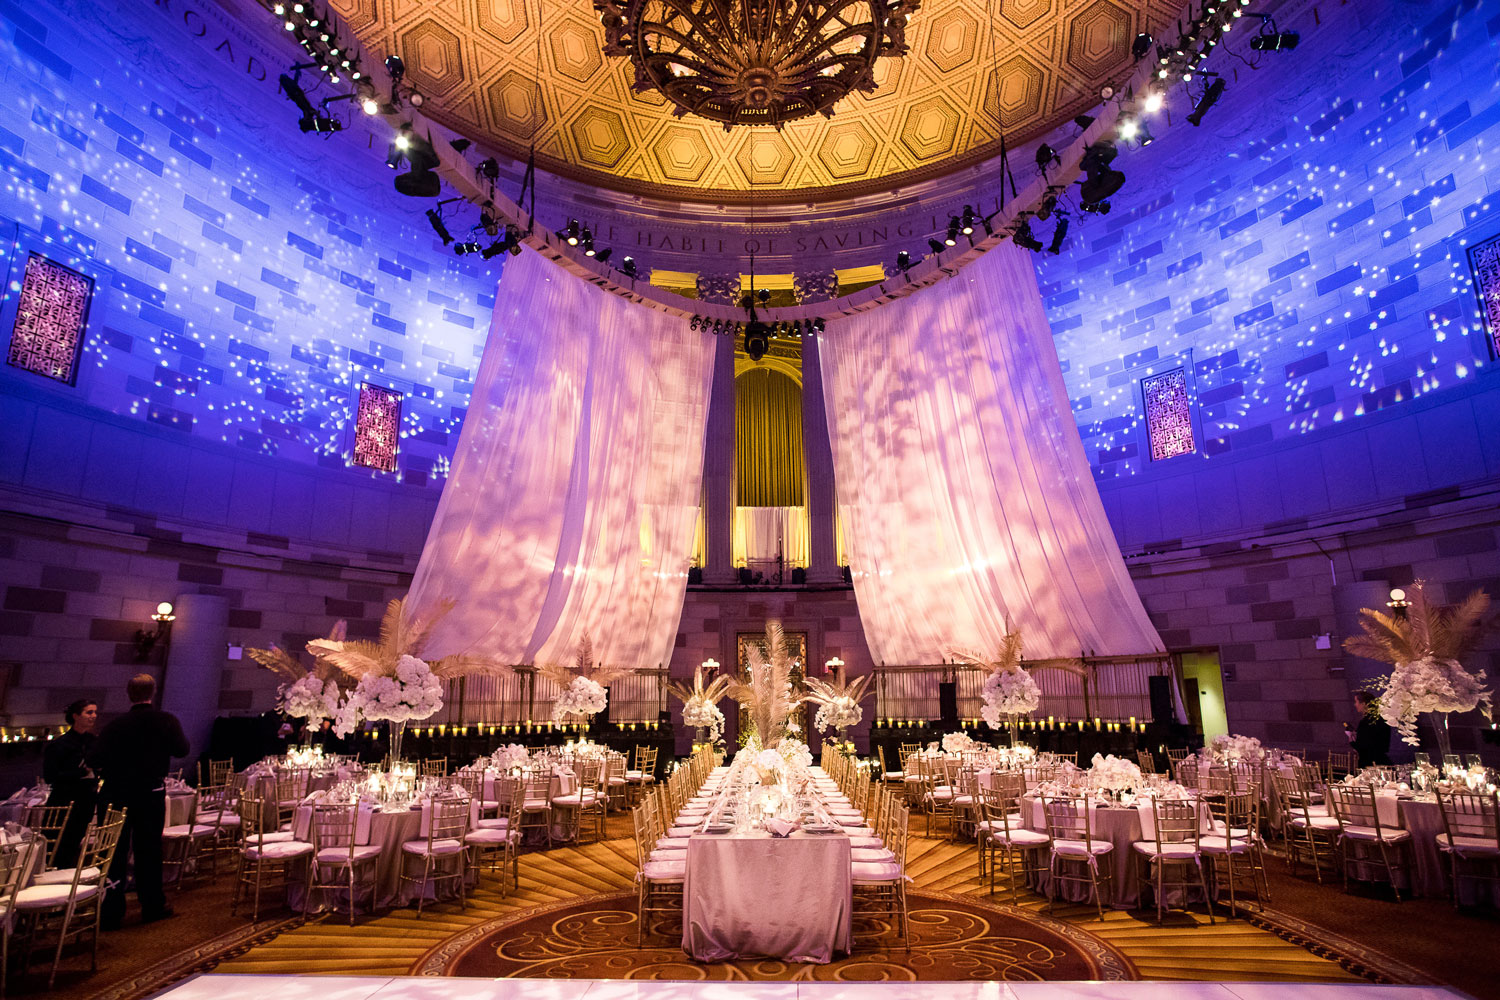 art deco style wedding reception tall ceilings lighting gold palm centerpieces gatsby wedding ideas